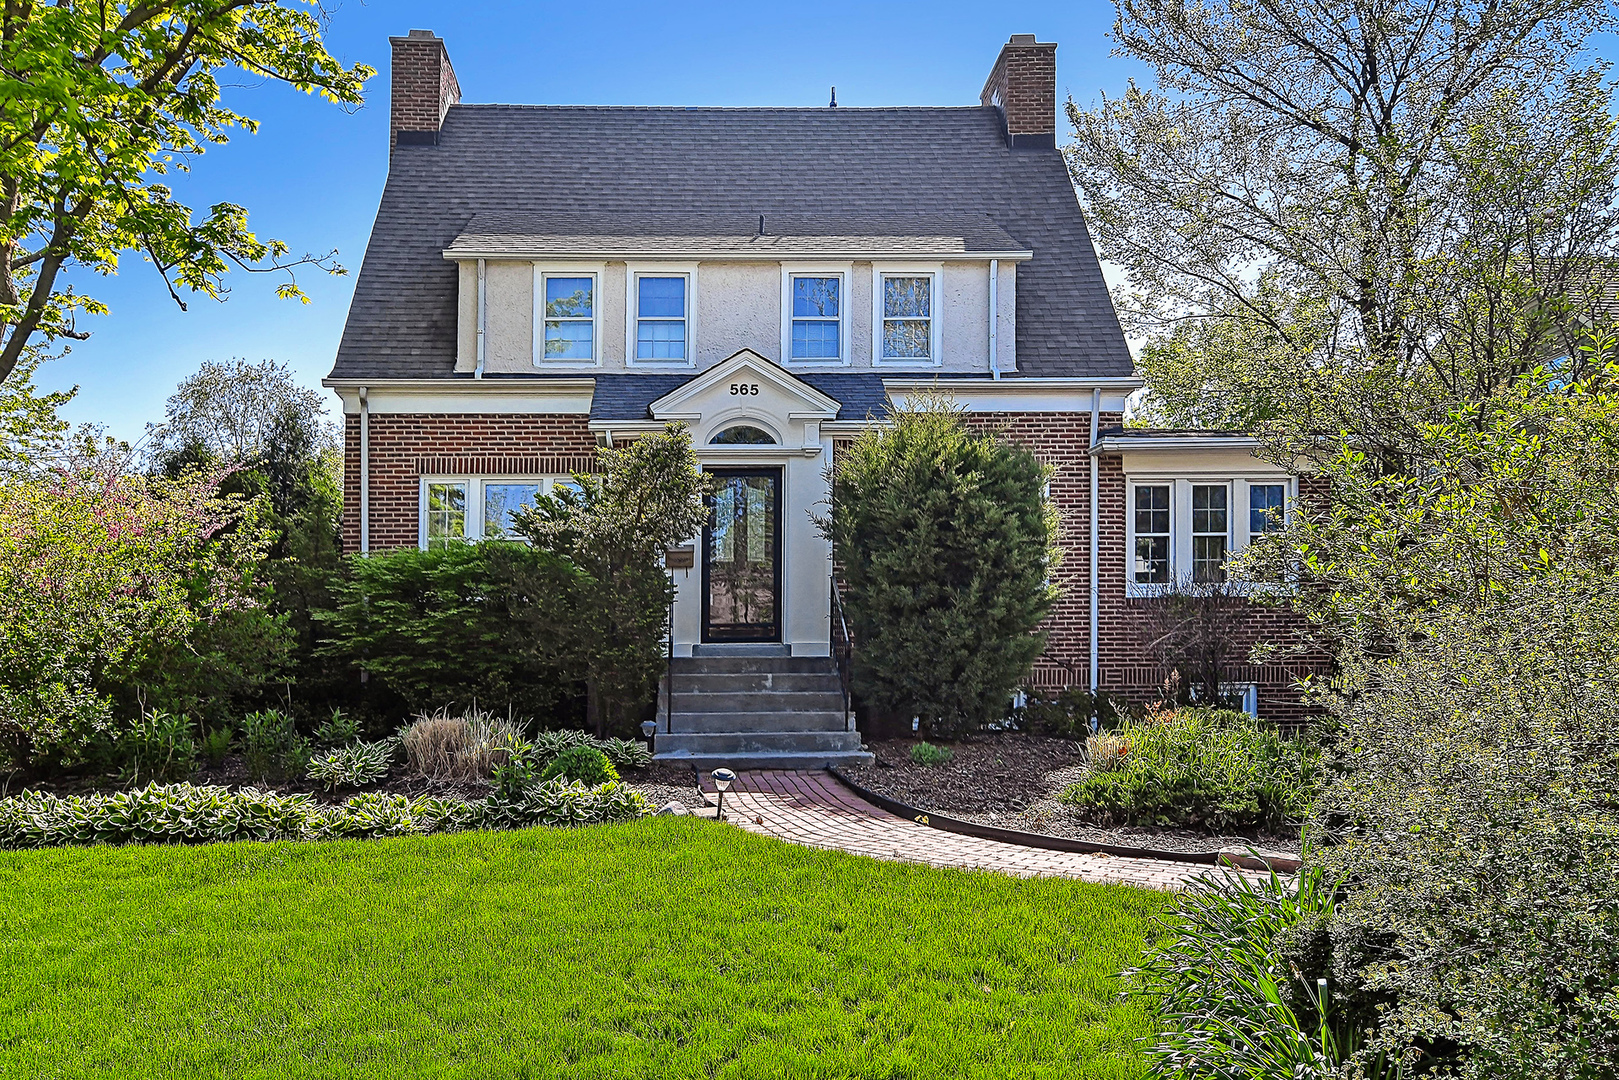 565 NORTH GRANT STREET, HINSDALE, IL 60521